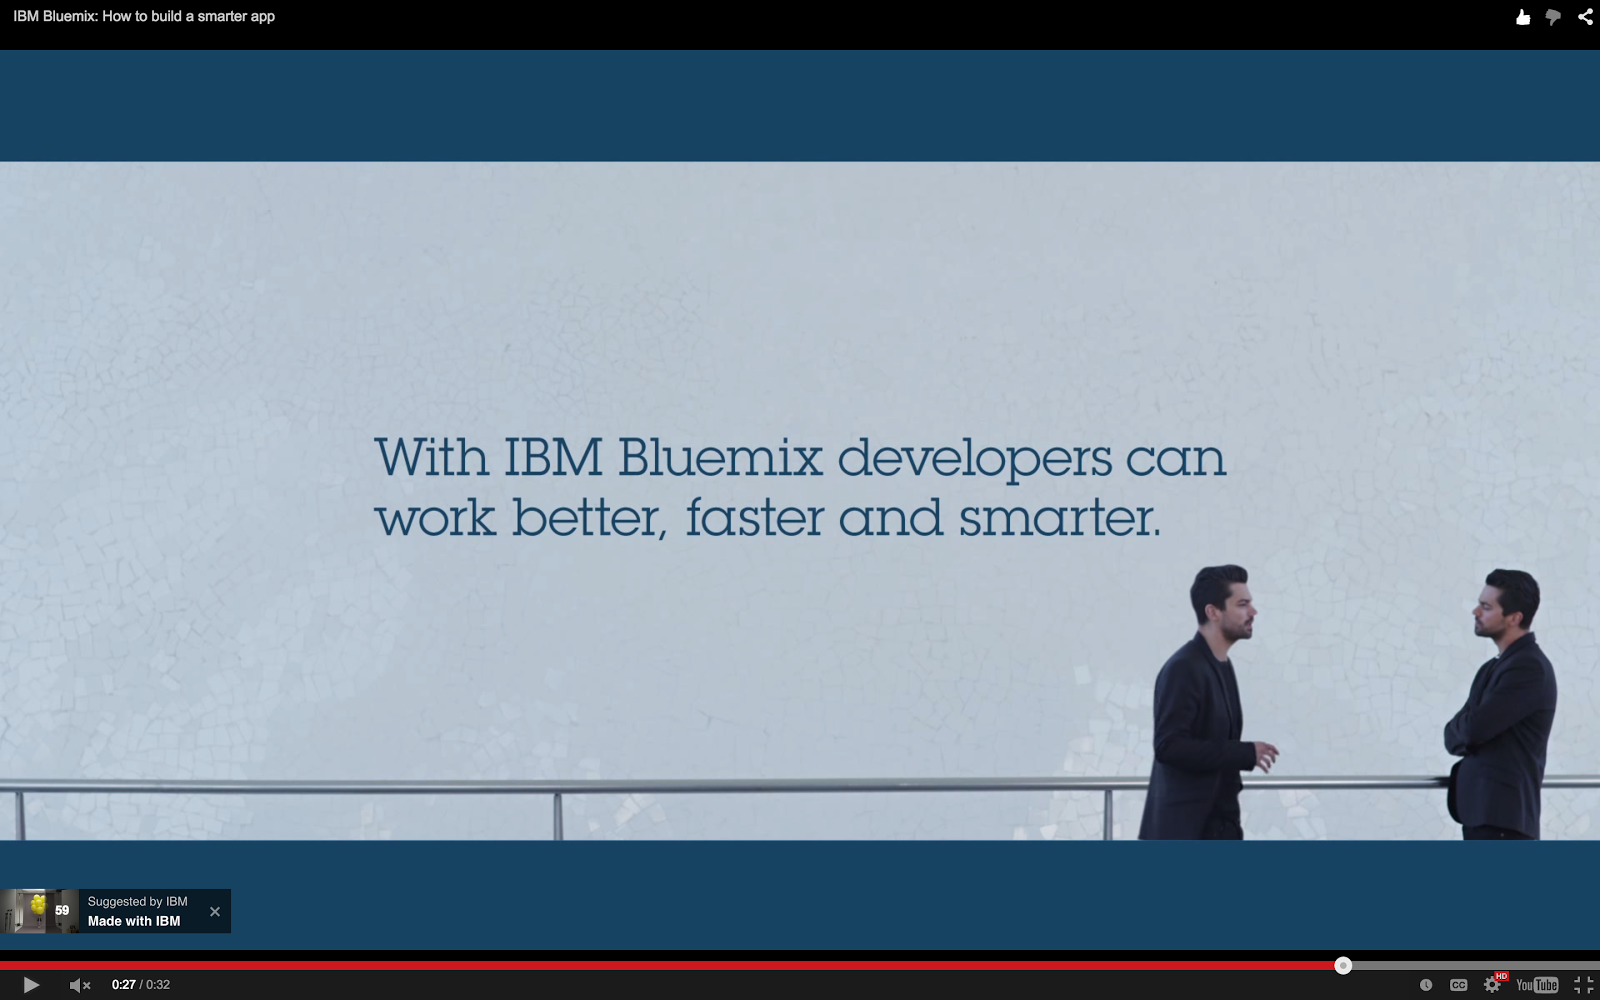 Bluemix YouTube: With IBM Bluemix Developers Can Work Better, Faster, Smarter